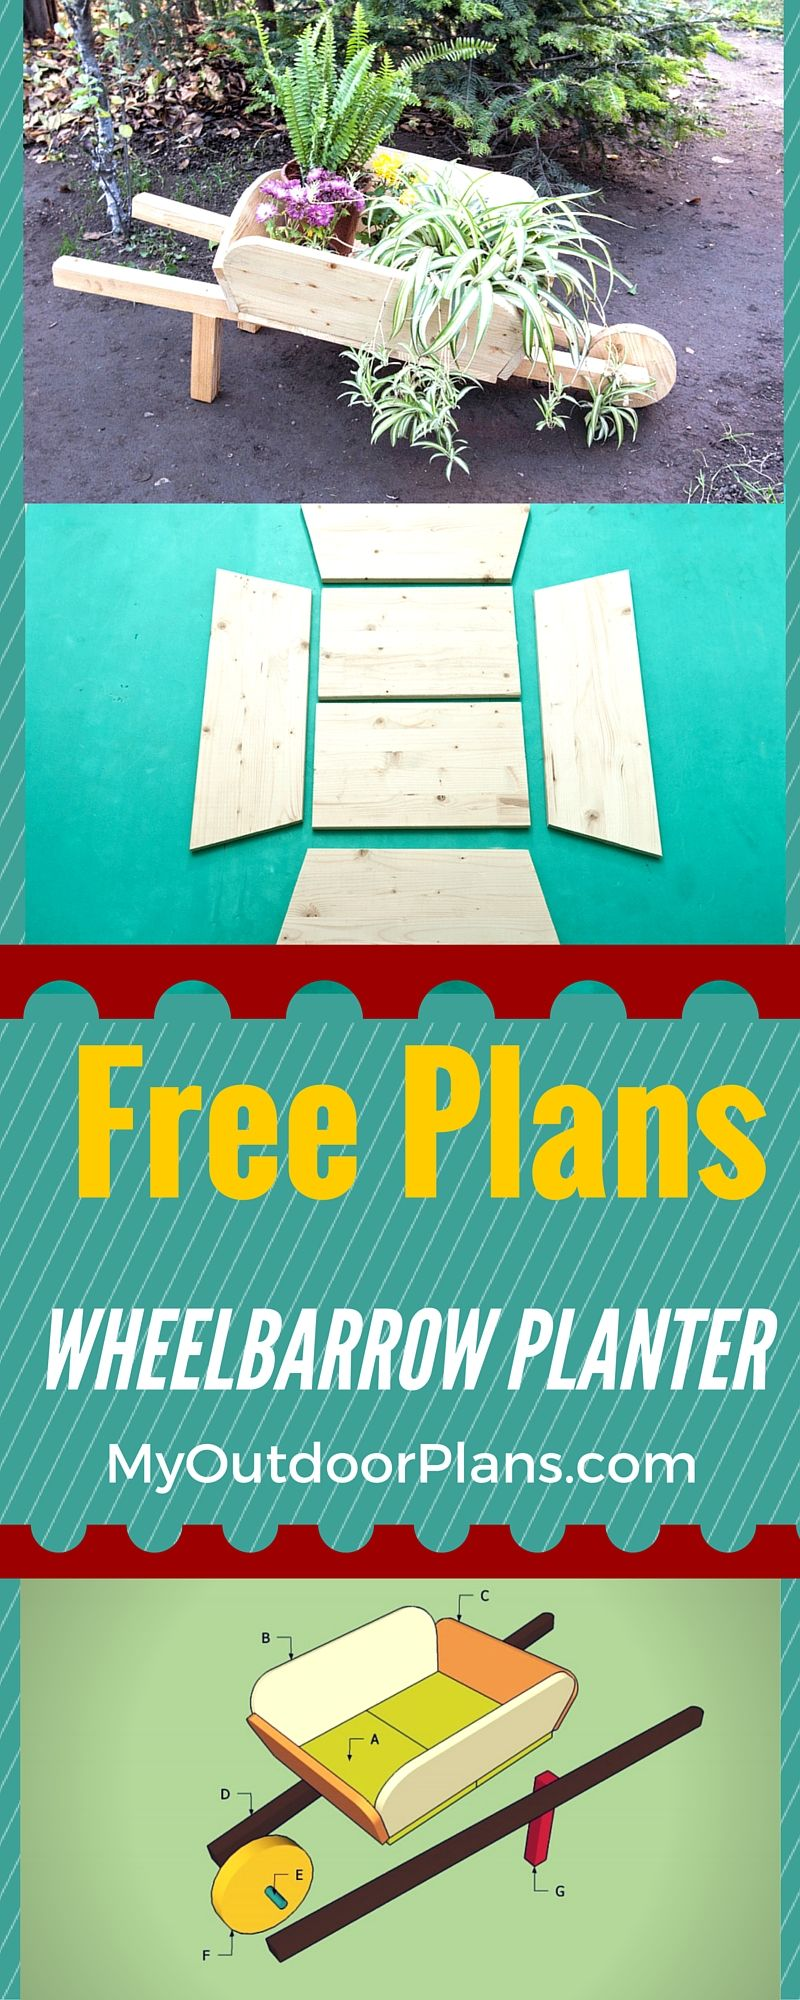 How To Build A Wheelbarrow Planter   Easy To Follow Plans For Building A  Wood Wheelbarrow